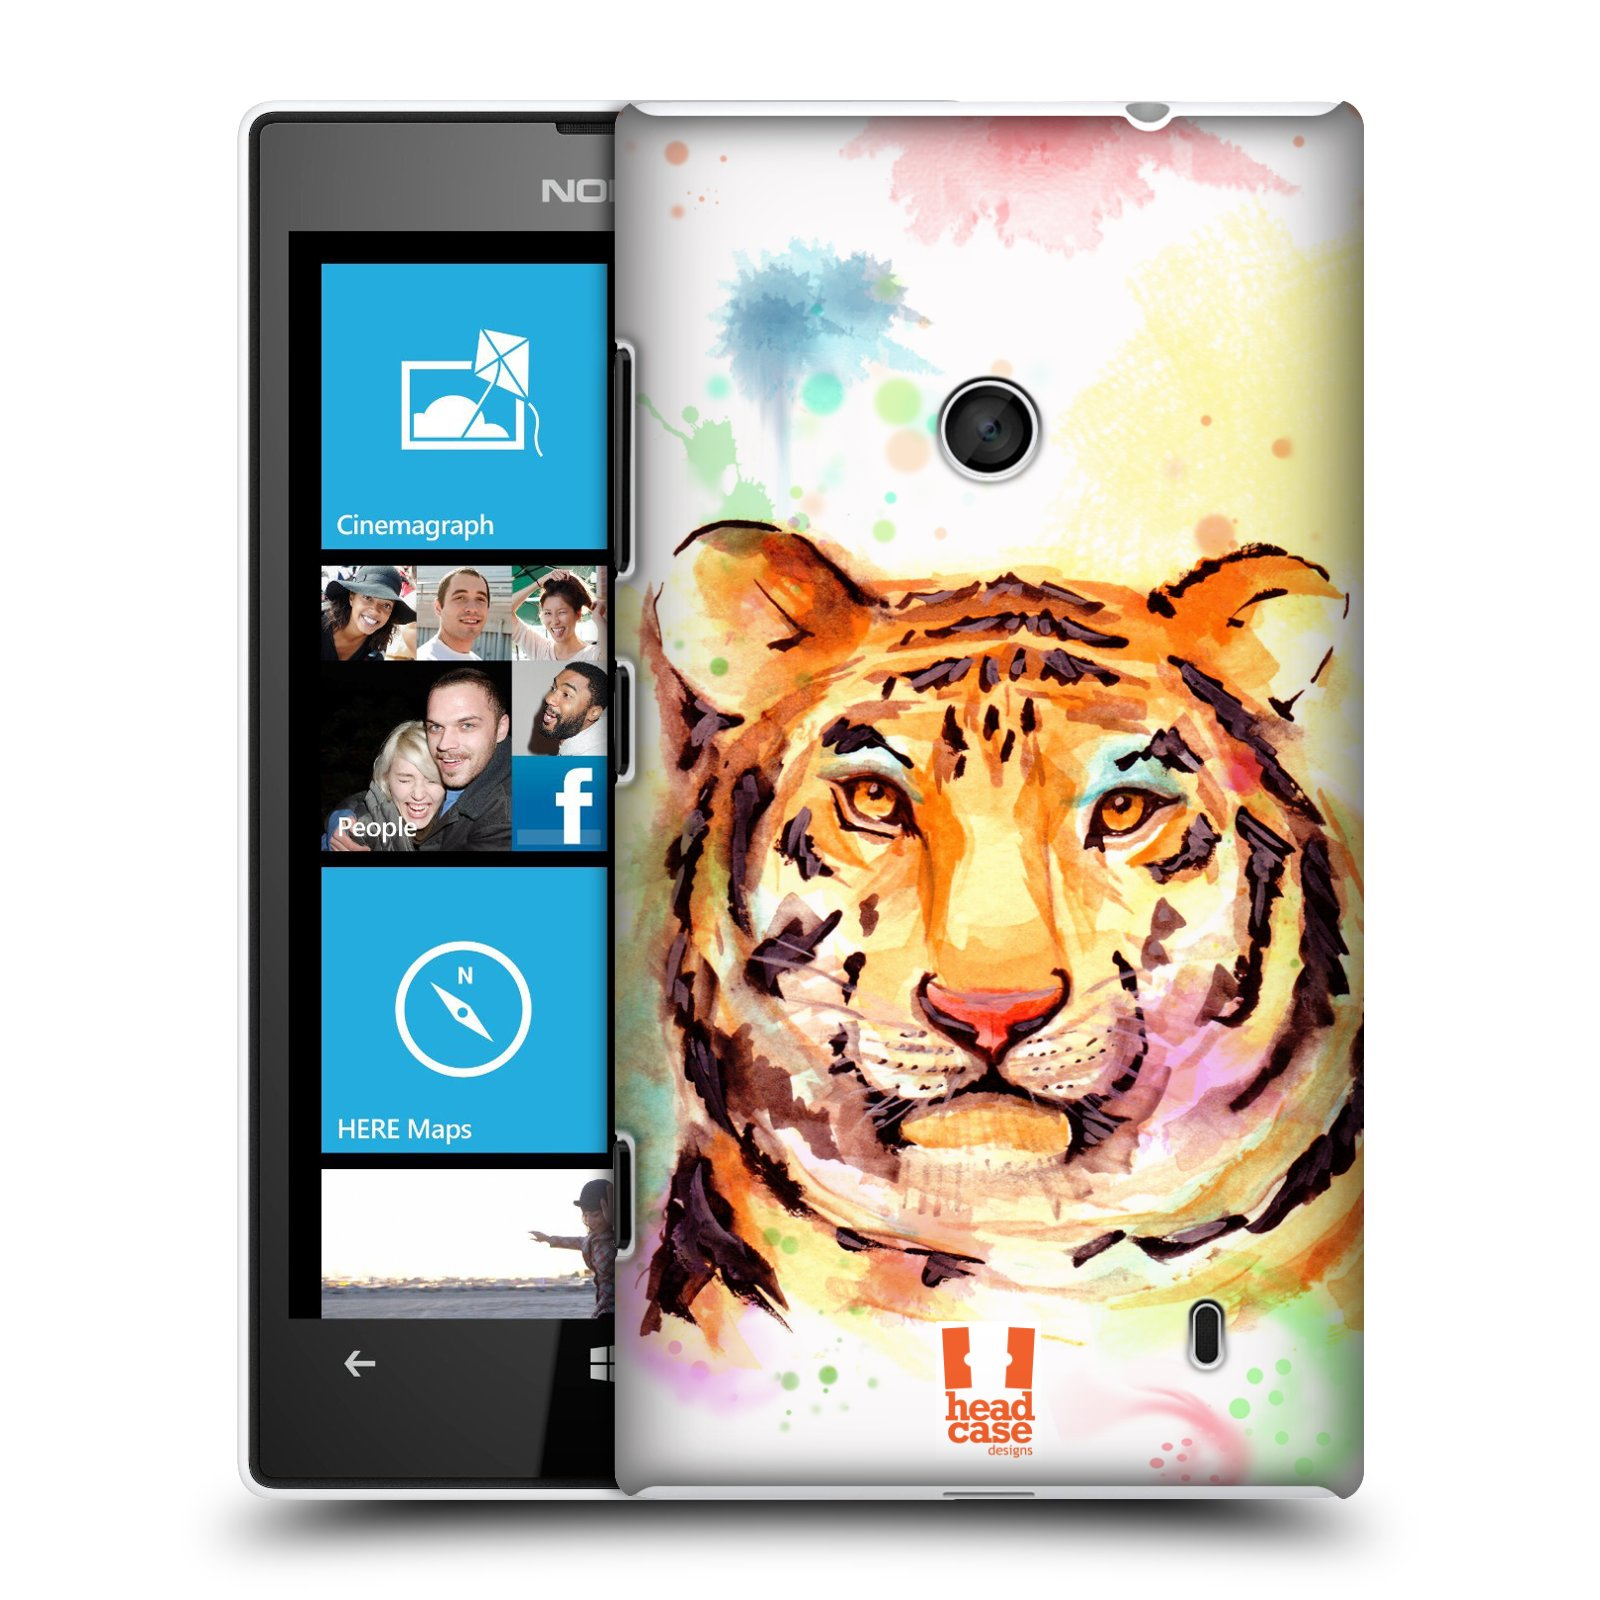 HEAD CASE DESIGNS WATERCOLOURED ANIMALS CASE COVER FOR NOKIA LUMIA 520